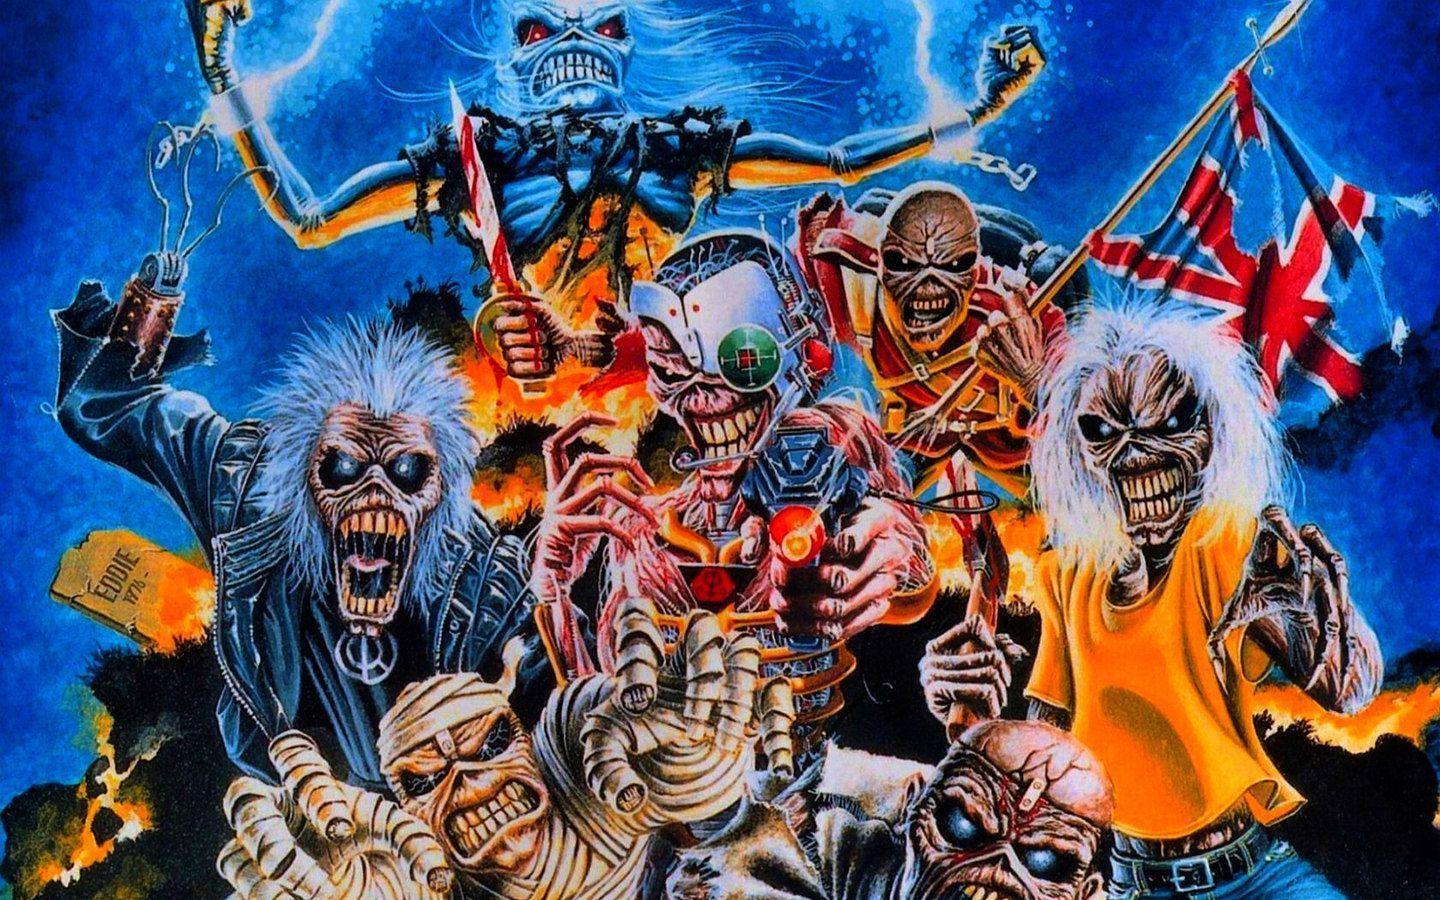 iron maiden wallpapers covers - photo #22